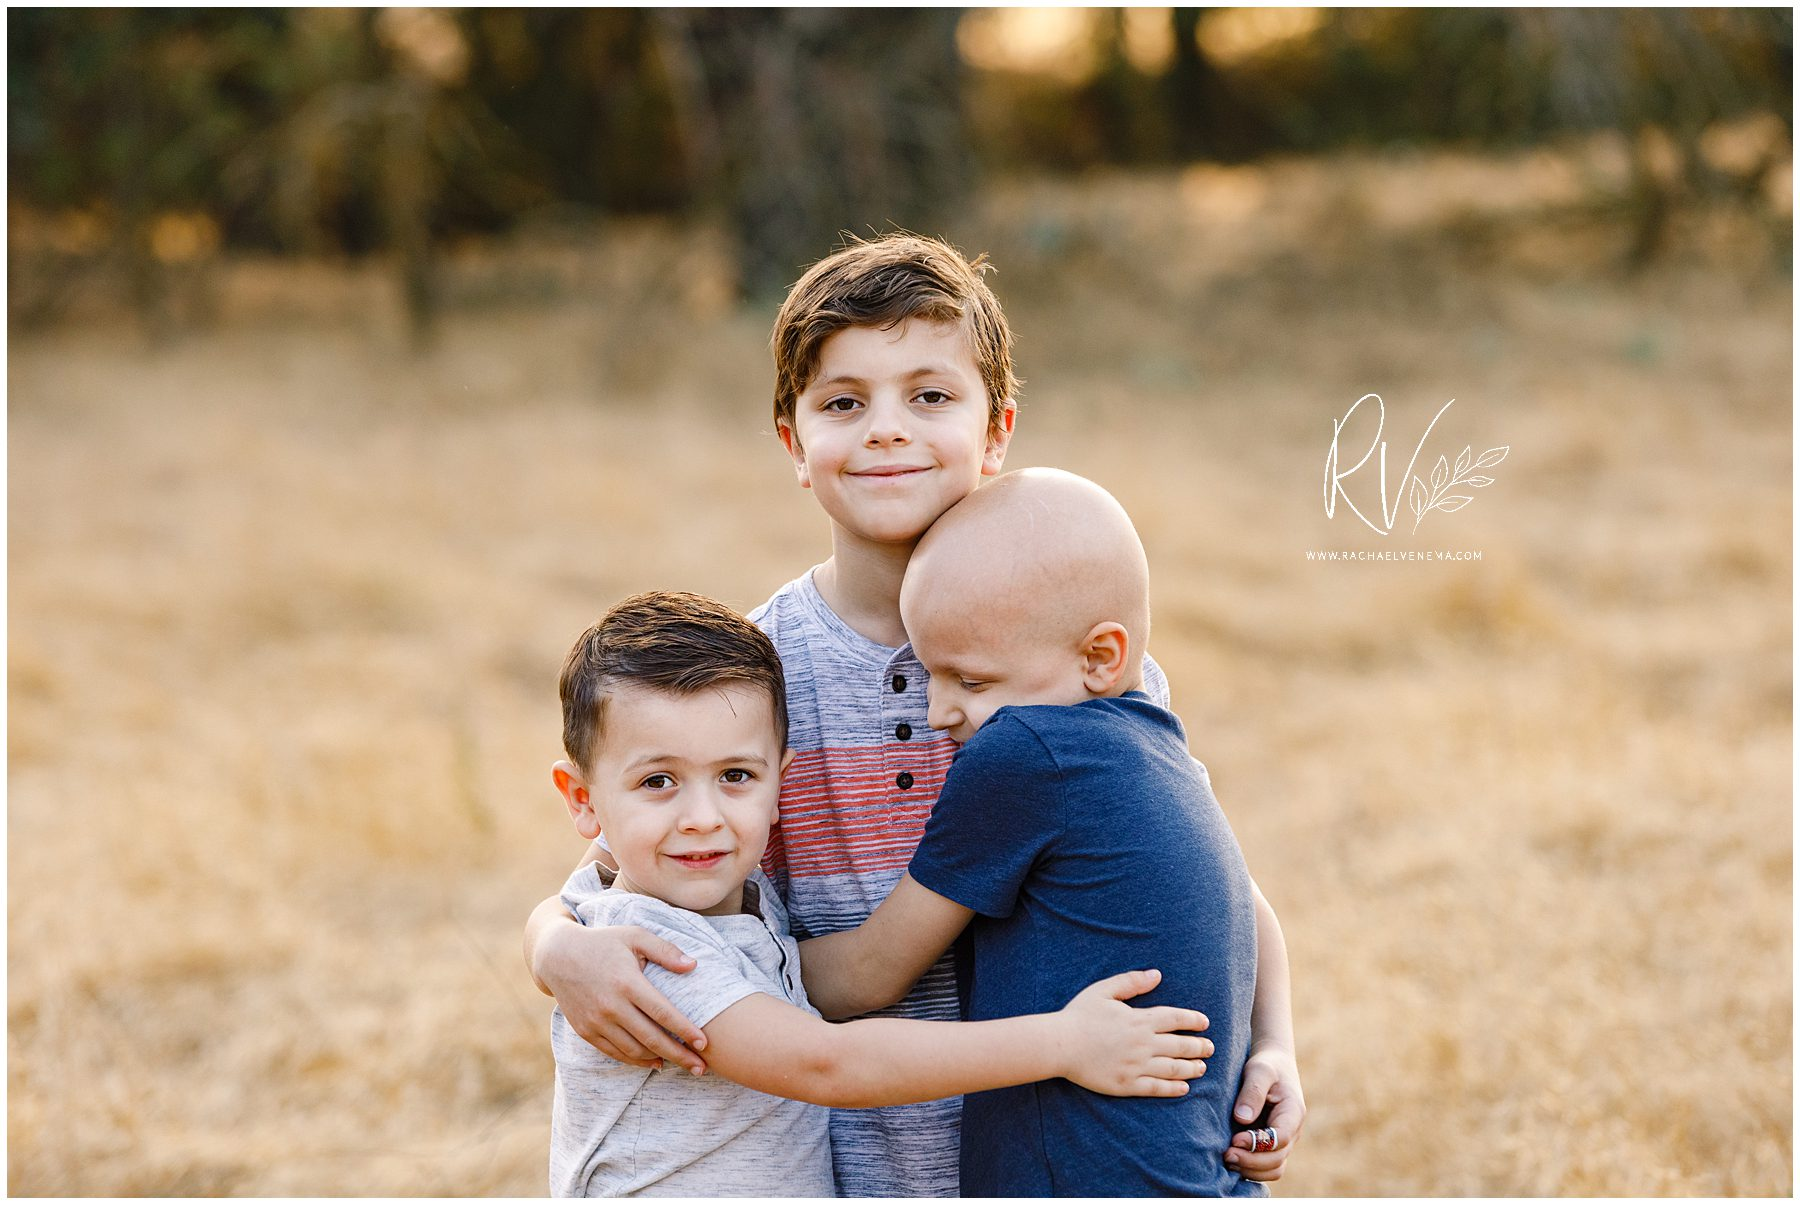 Ripon photographer Rachael Venema shares the story of photographing a family through the Gold Hope Project